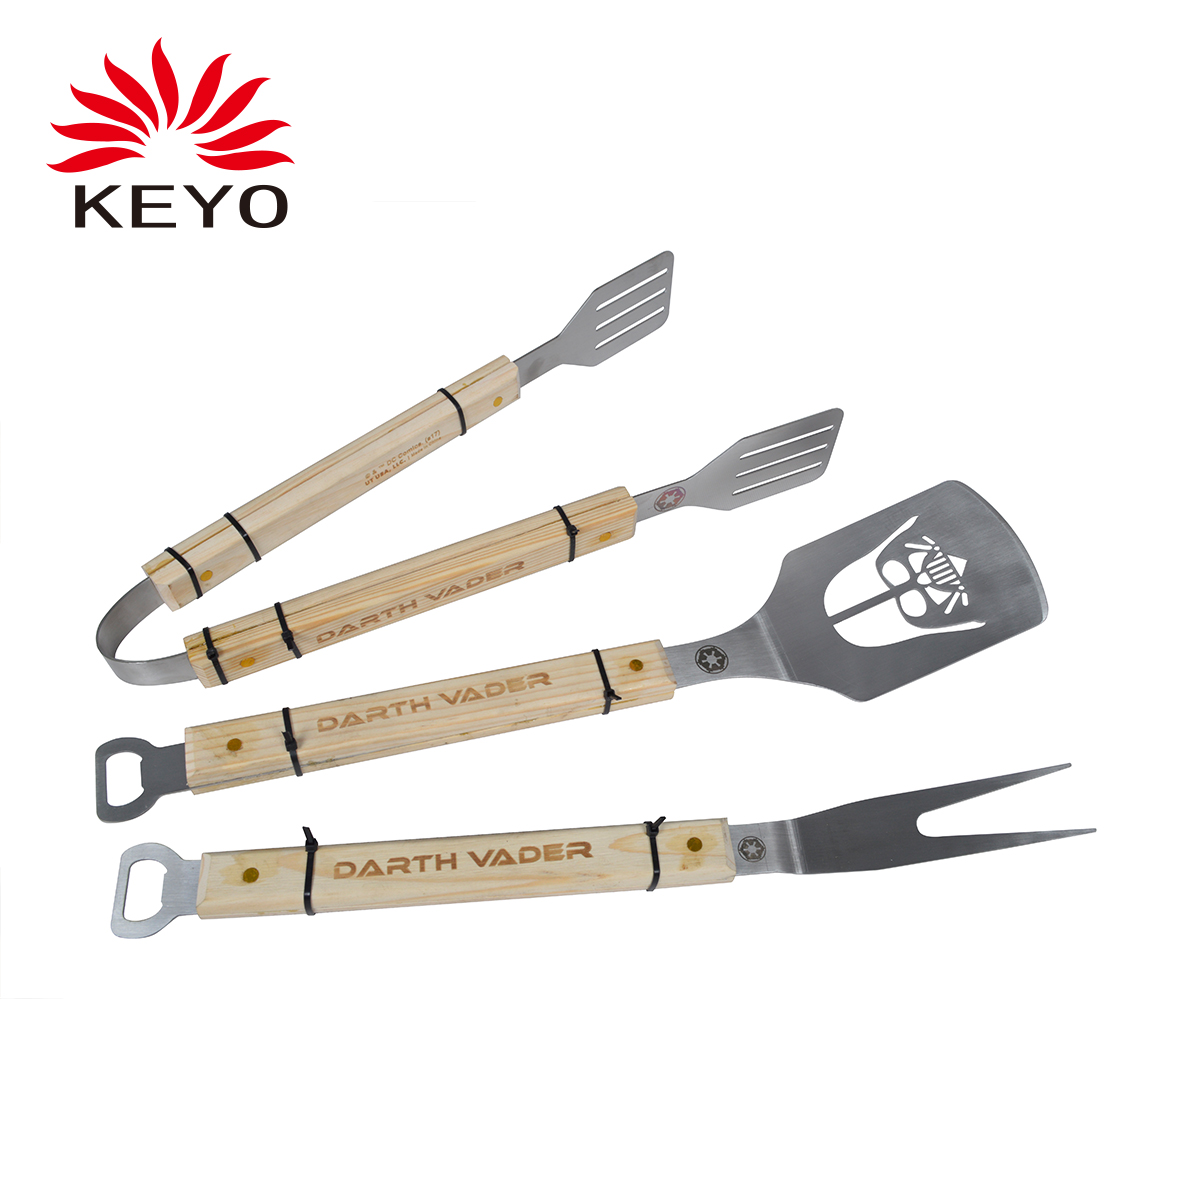 KY001DIY Three pcs charcoal barbecue tool set